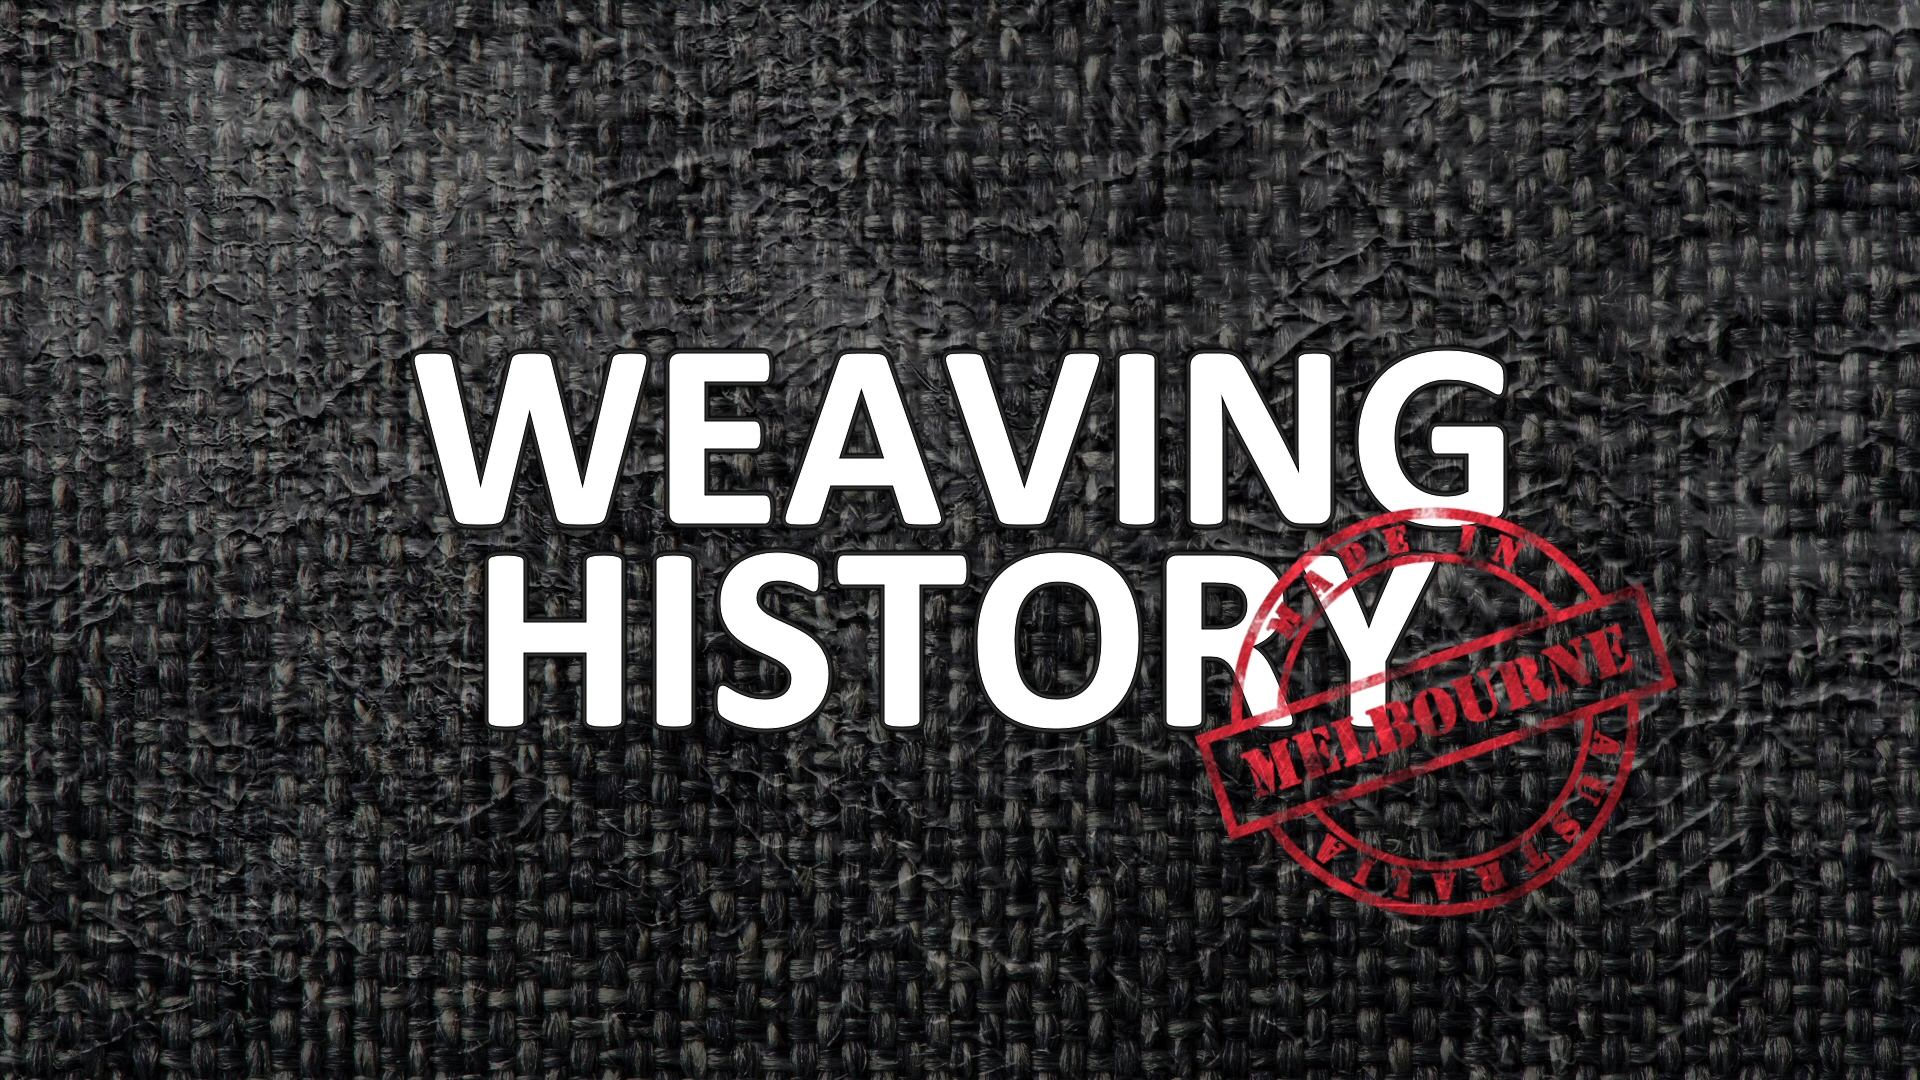 History of Weaving